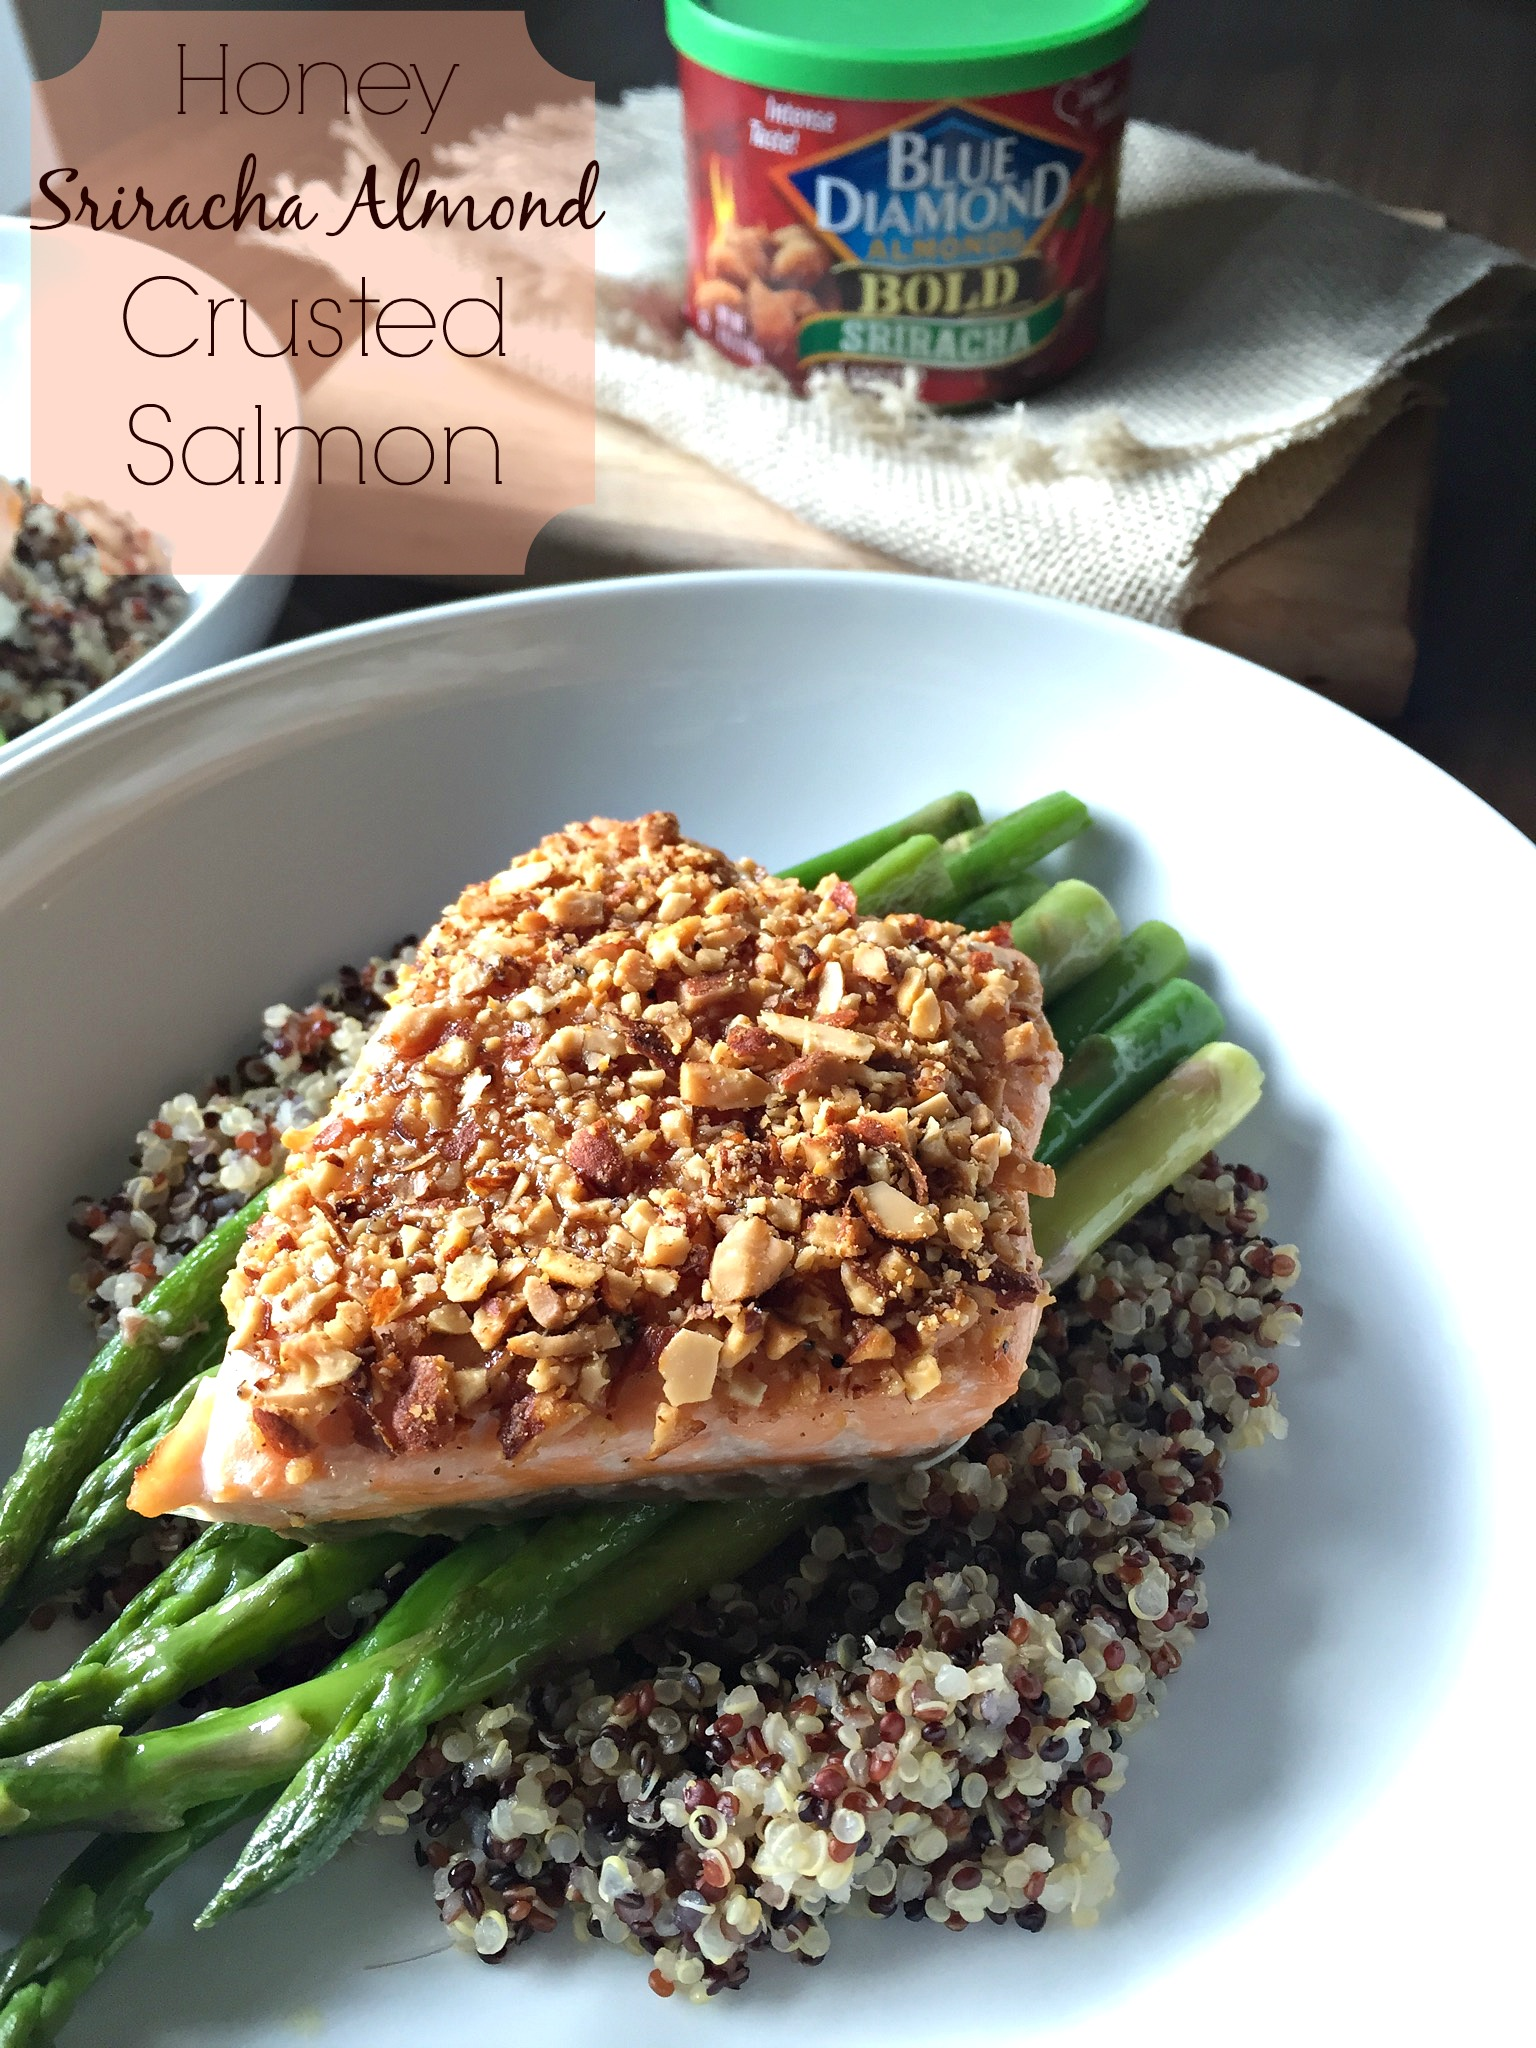 Honey Sriracha Almond Crusted Salmon